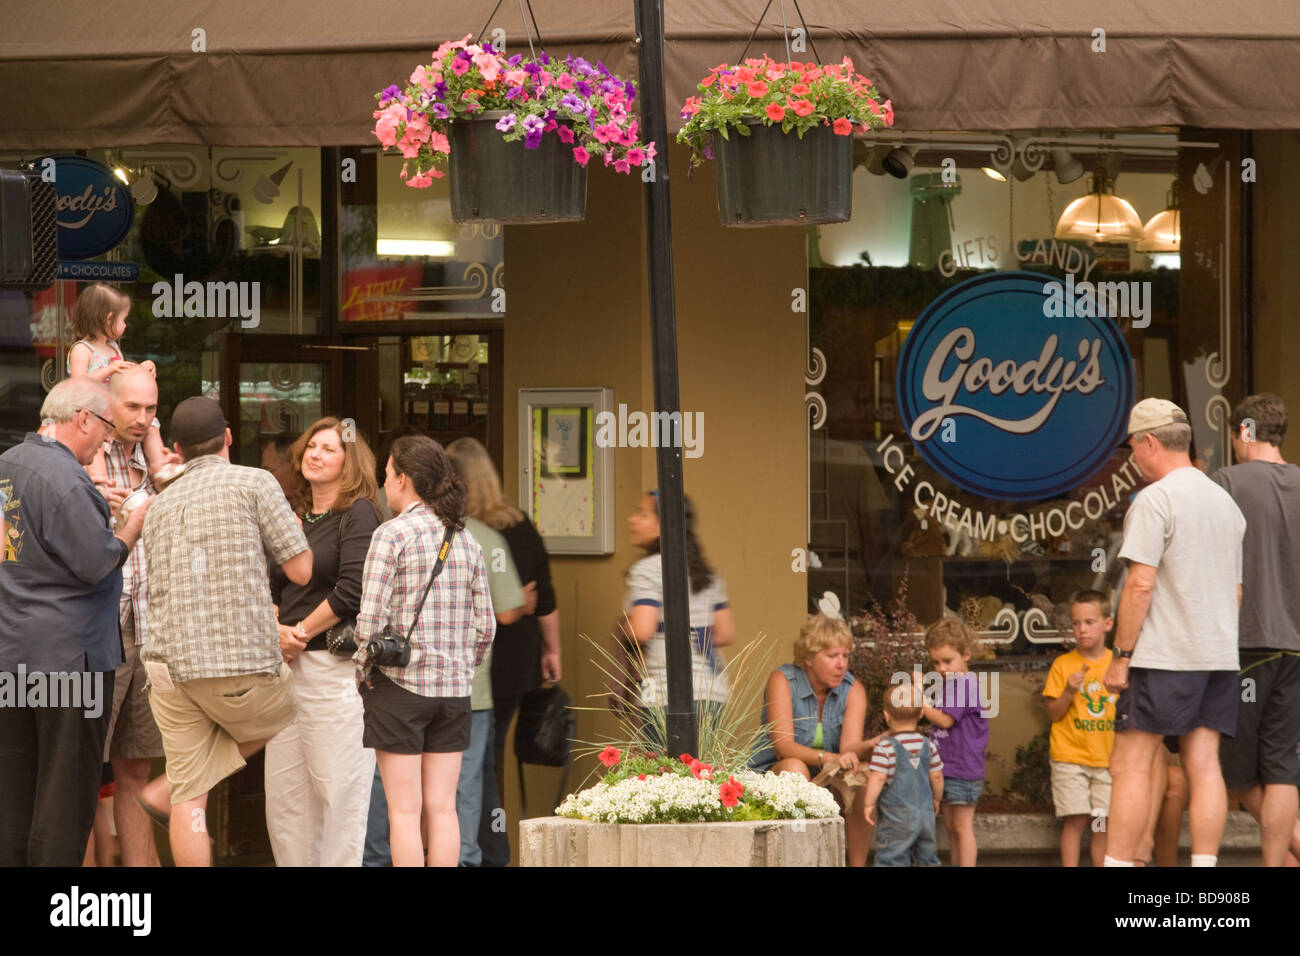 Friends families neighbors socializing at First Friday Gallery Walk Bend, Oregon - Stock Image